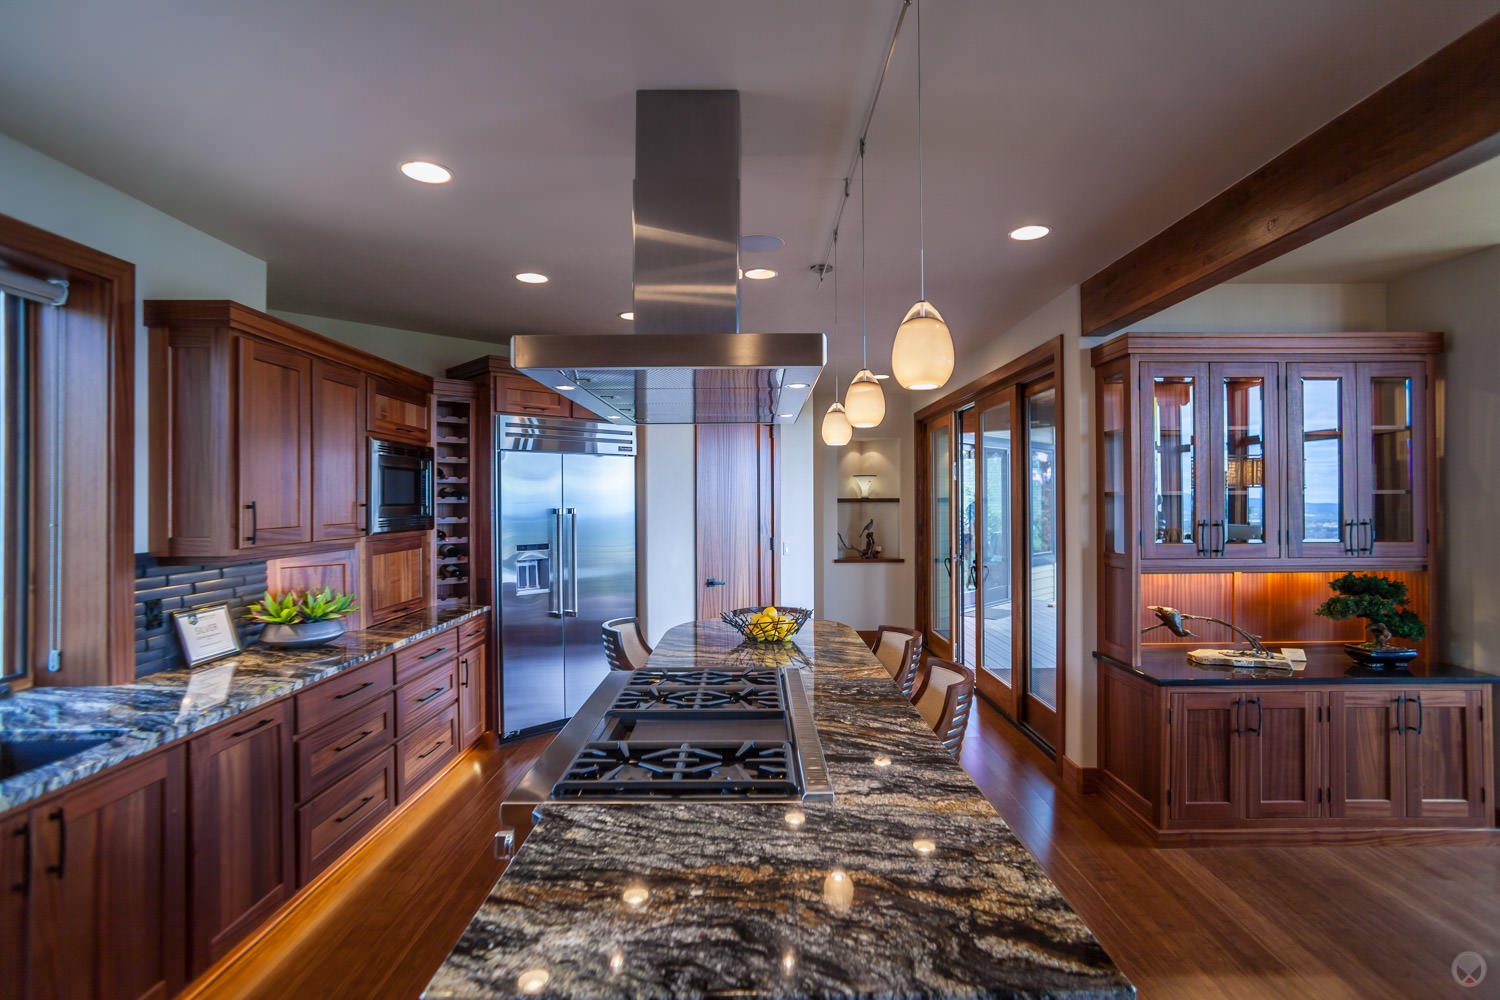 Grantit countertops.Also note: pendant light fixtures, Shaker-style cabinets, stainless steel appliances, and subway tile backsplash.